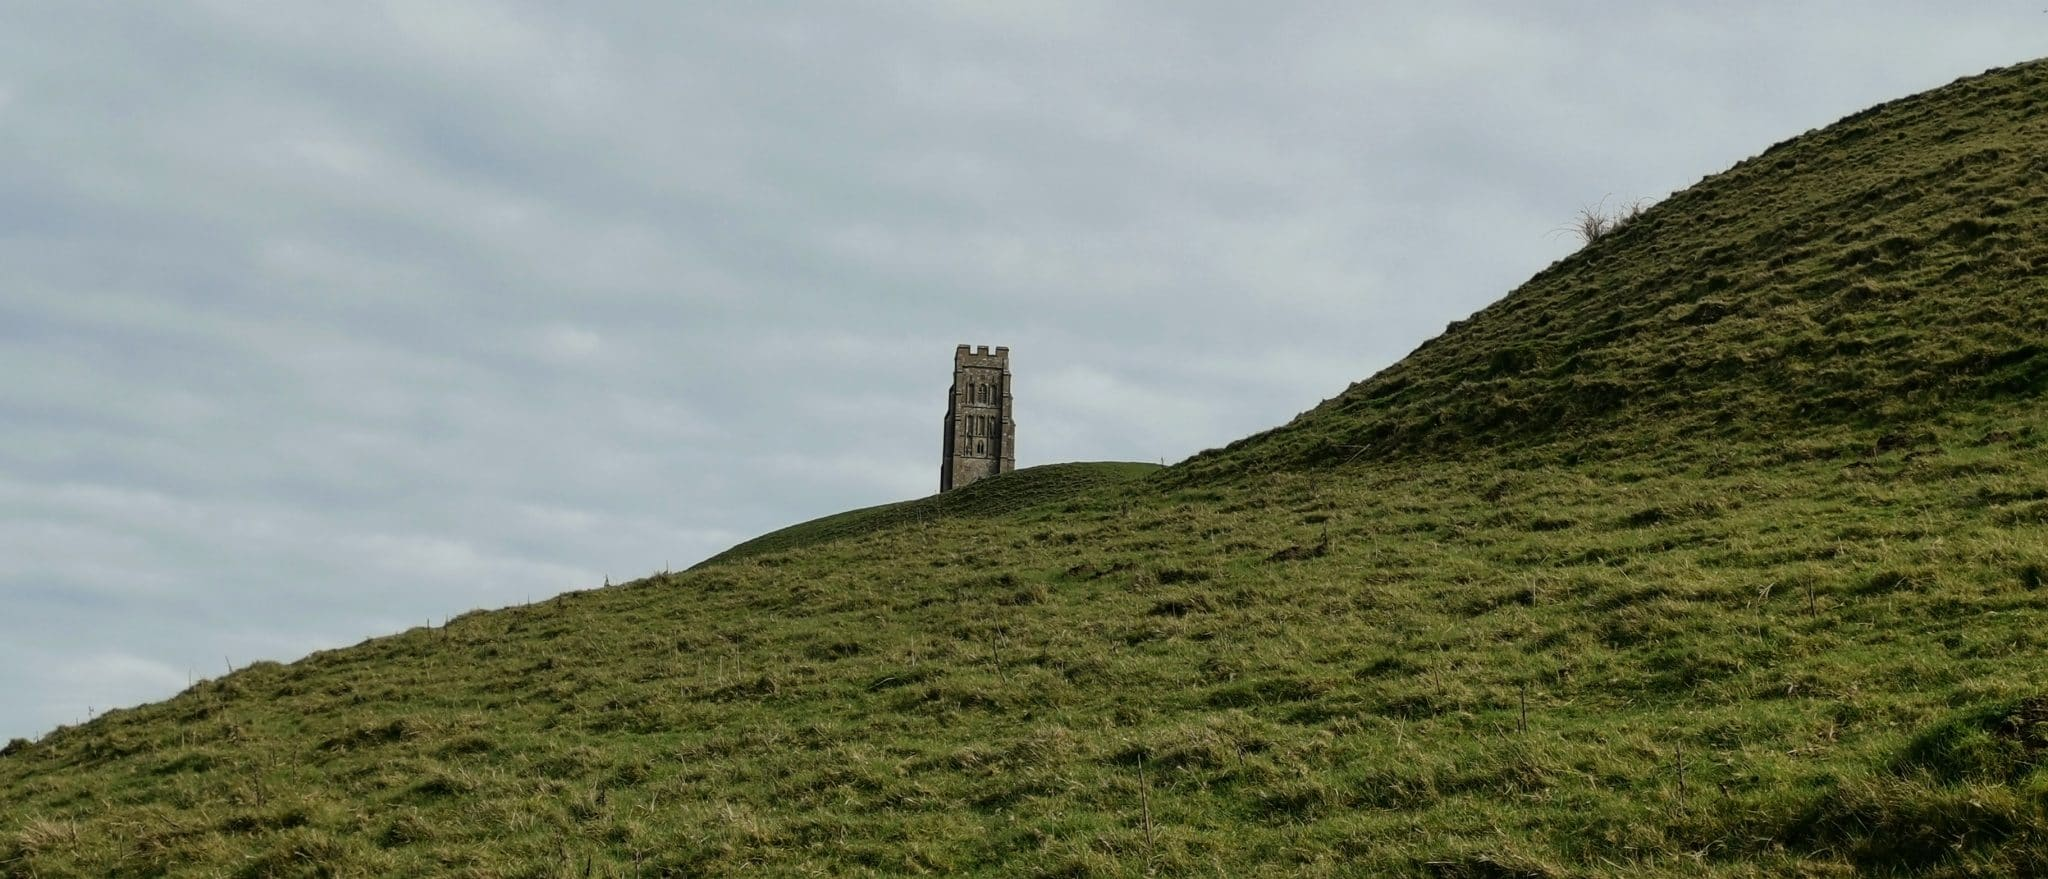 Glastonbury Tor Tower